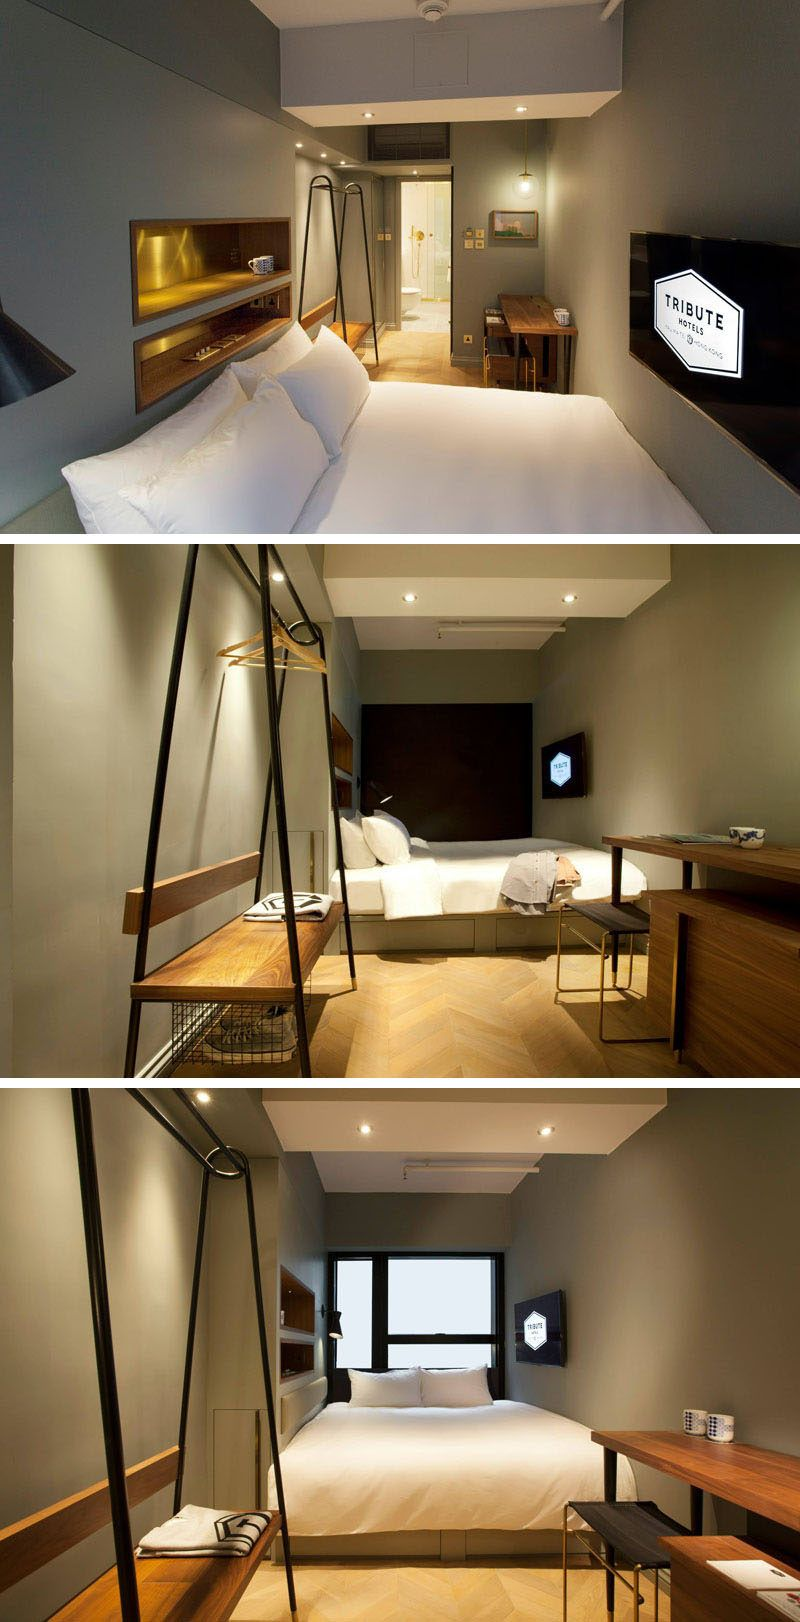 8 small hotel rooms that maximize their tiny space in 2019 - Small space room ideas ...